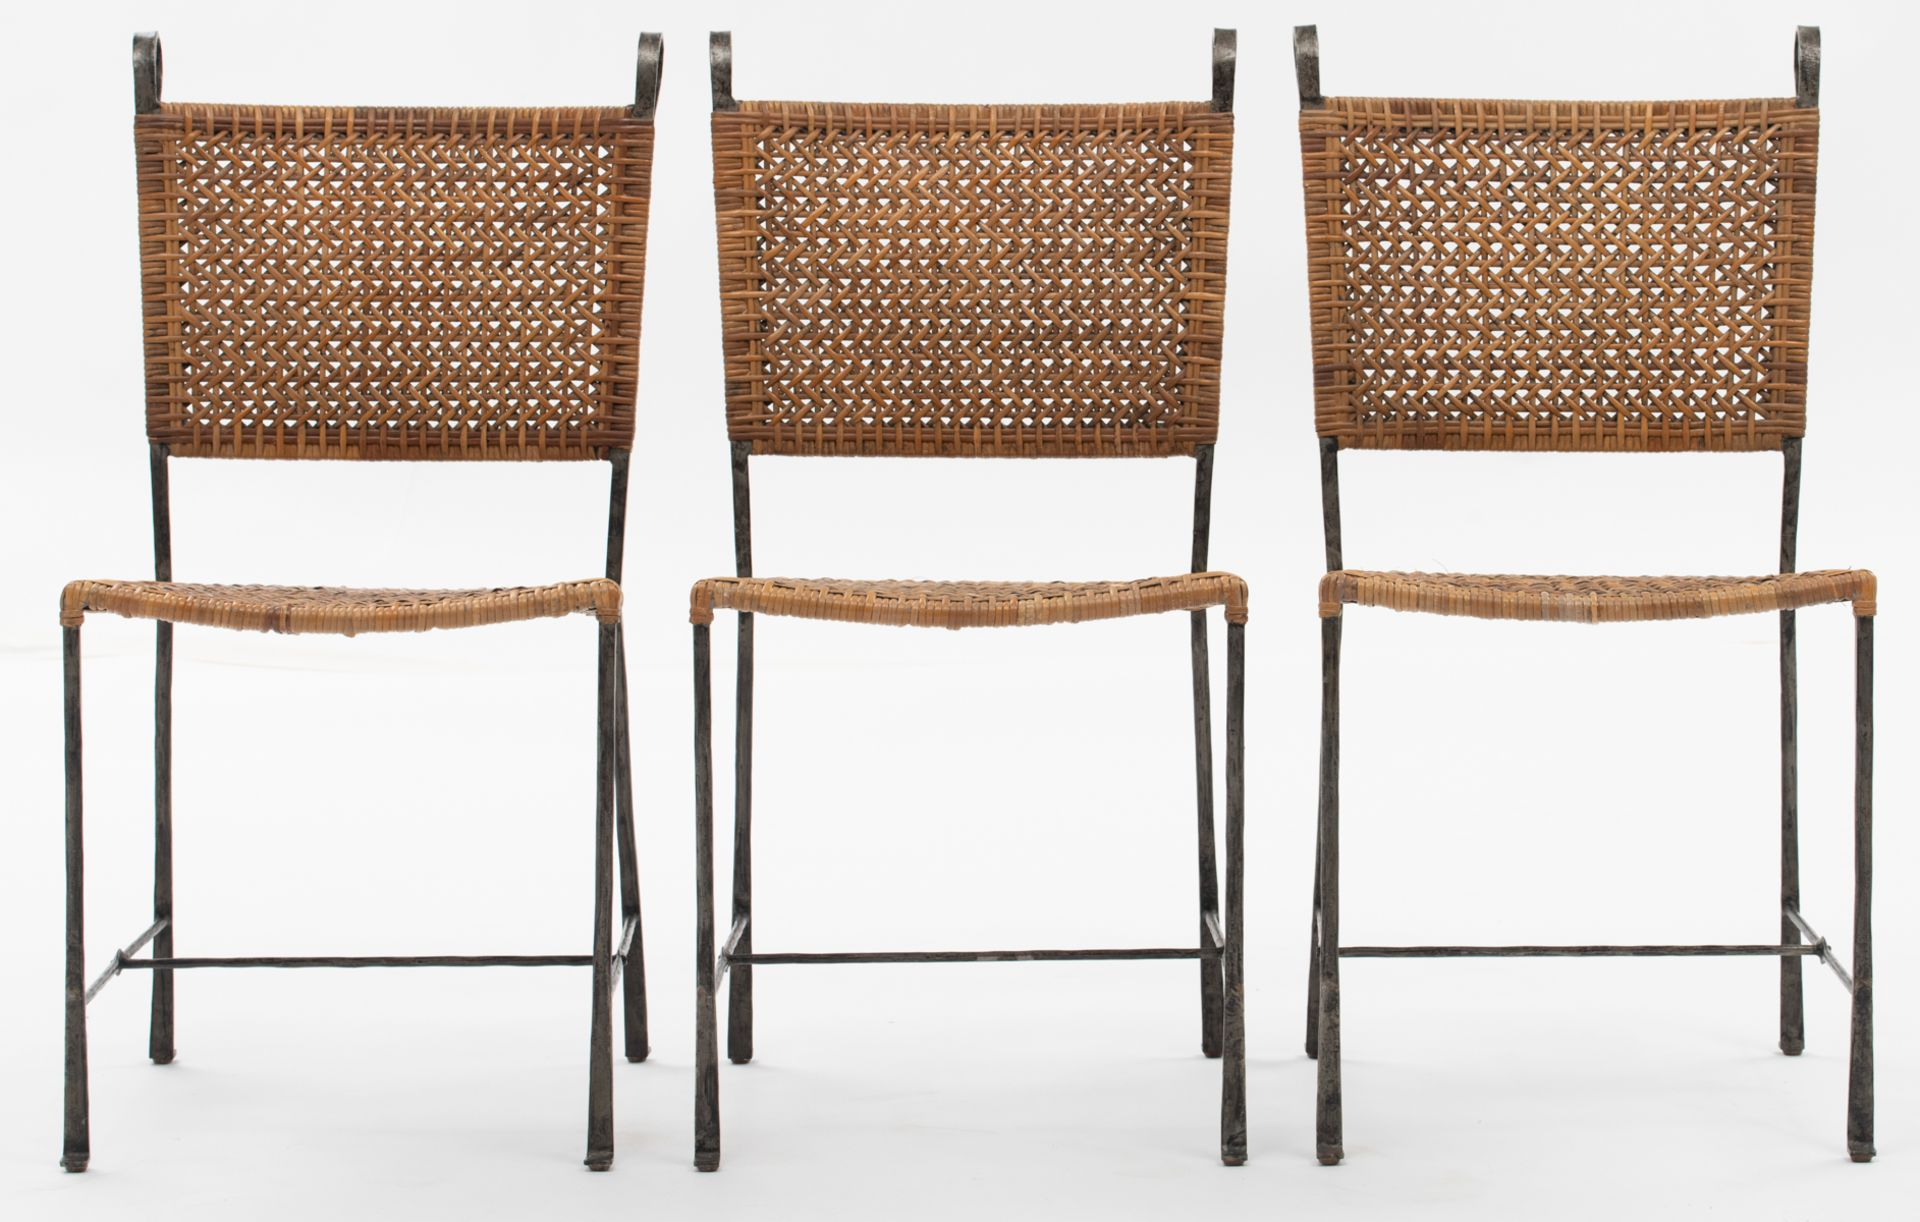 Los 534 - A set of six chairs by Ched Berenguer-Topacio, cast iron and rattan, H 91 - W 46 - D 55 cm